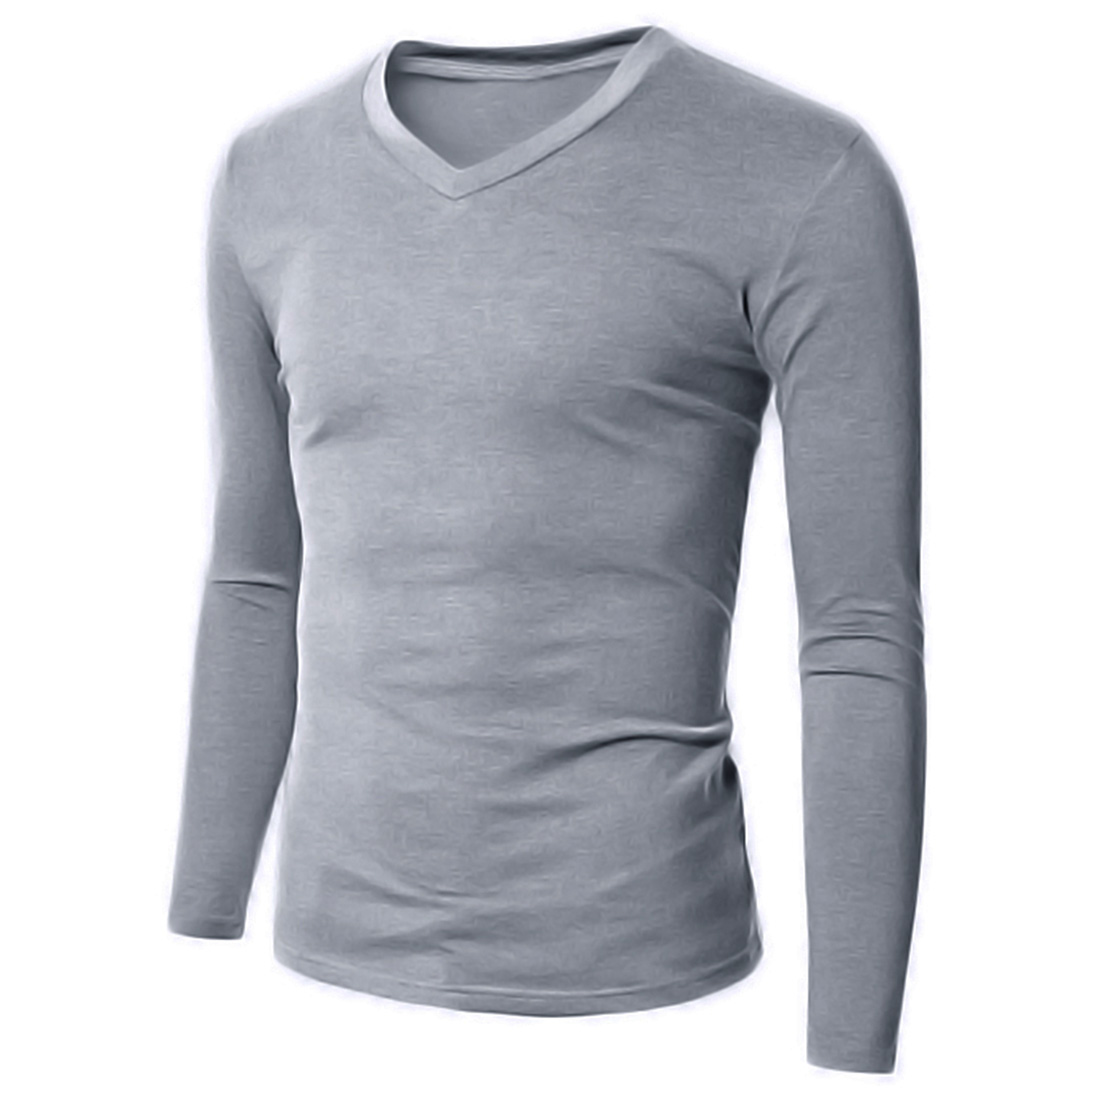 100 cotton mens slim basic tee t shirt long sleeve v neck for Tahari t shirt mens